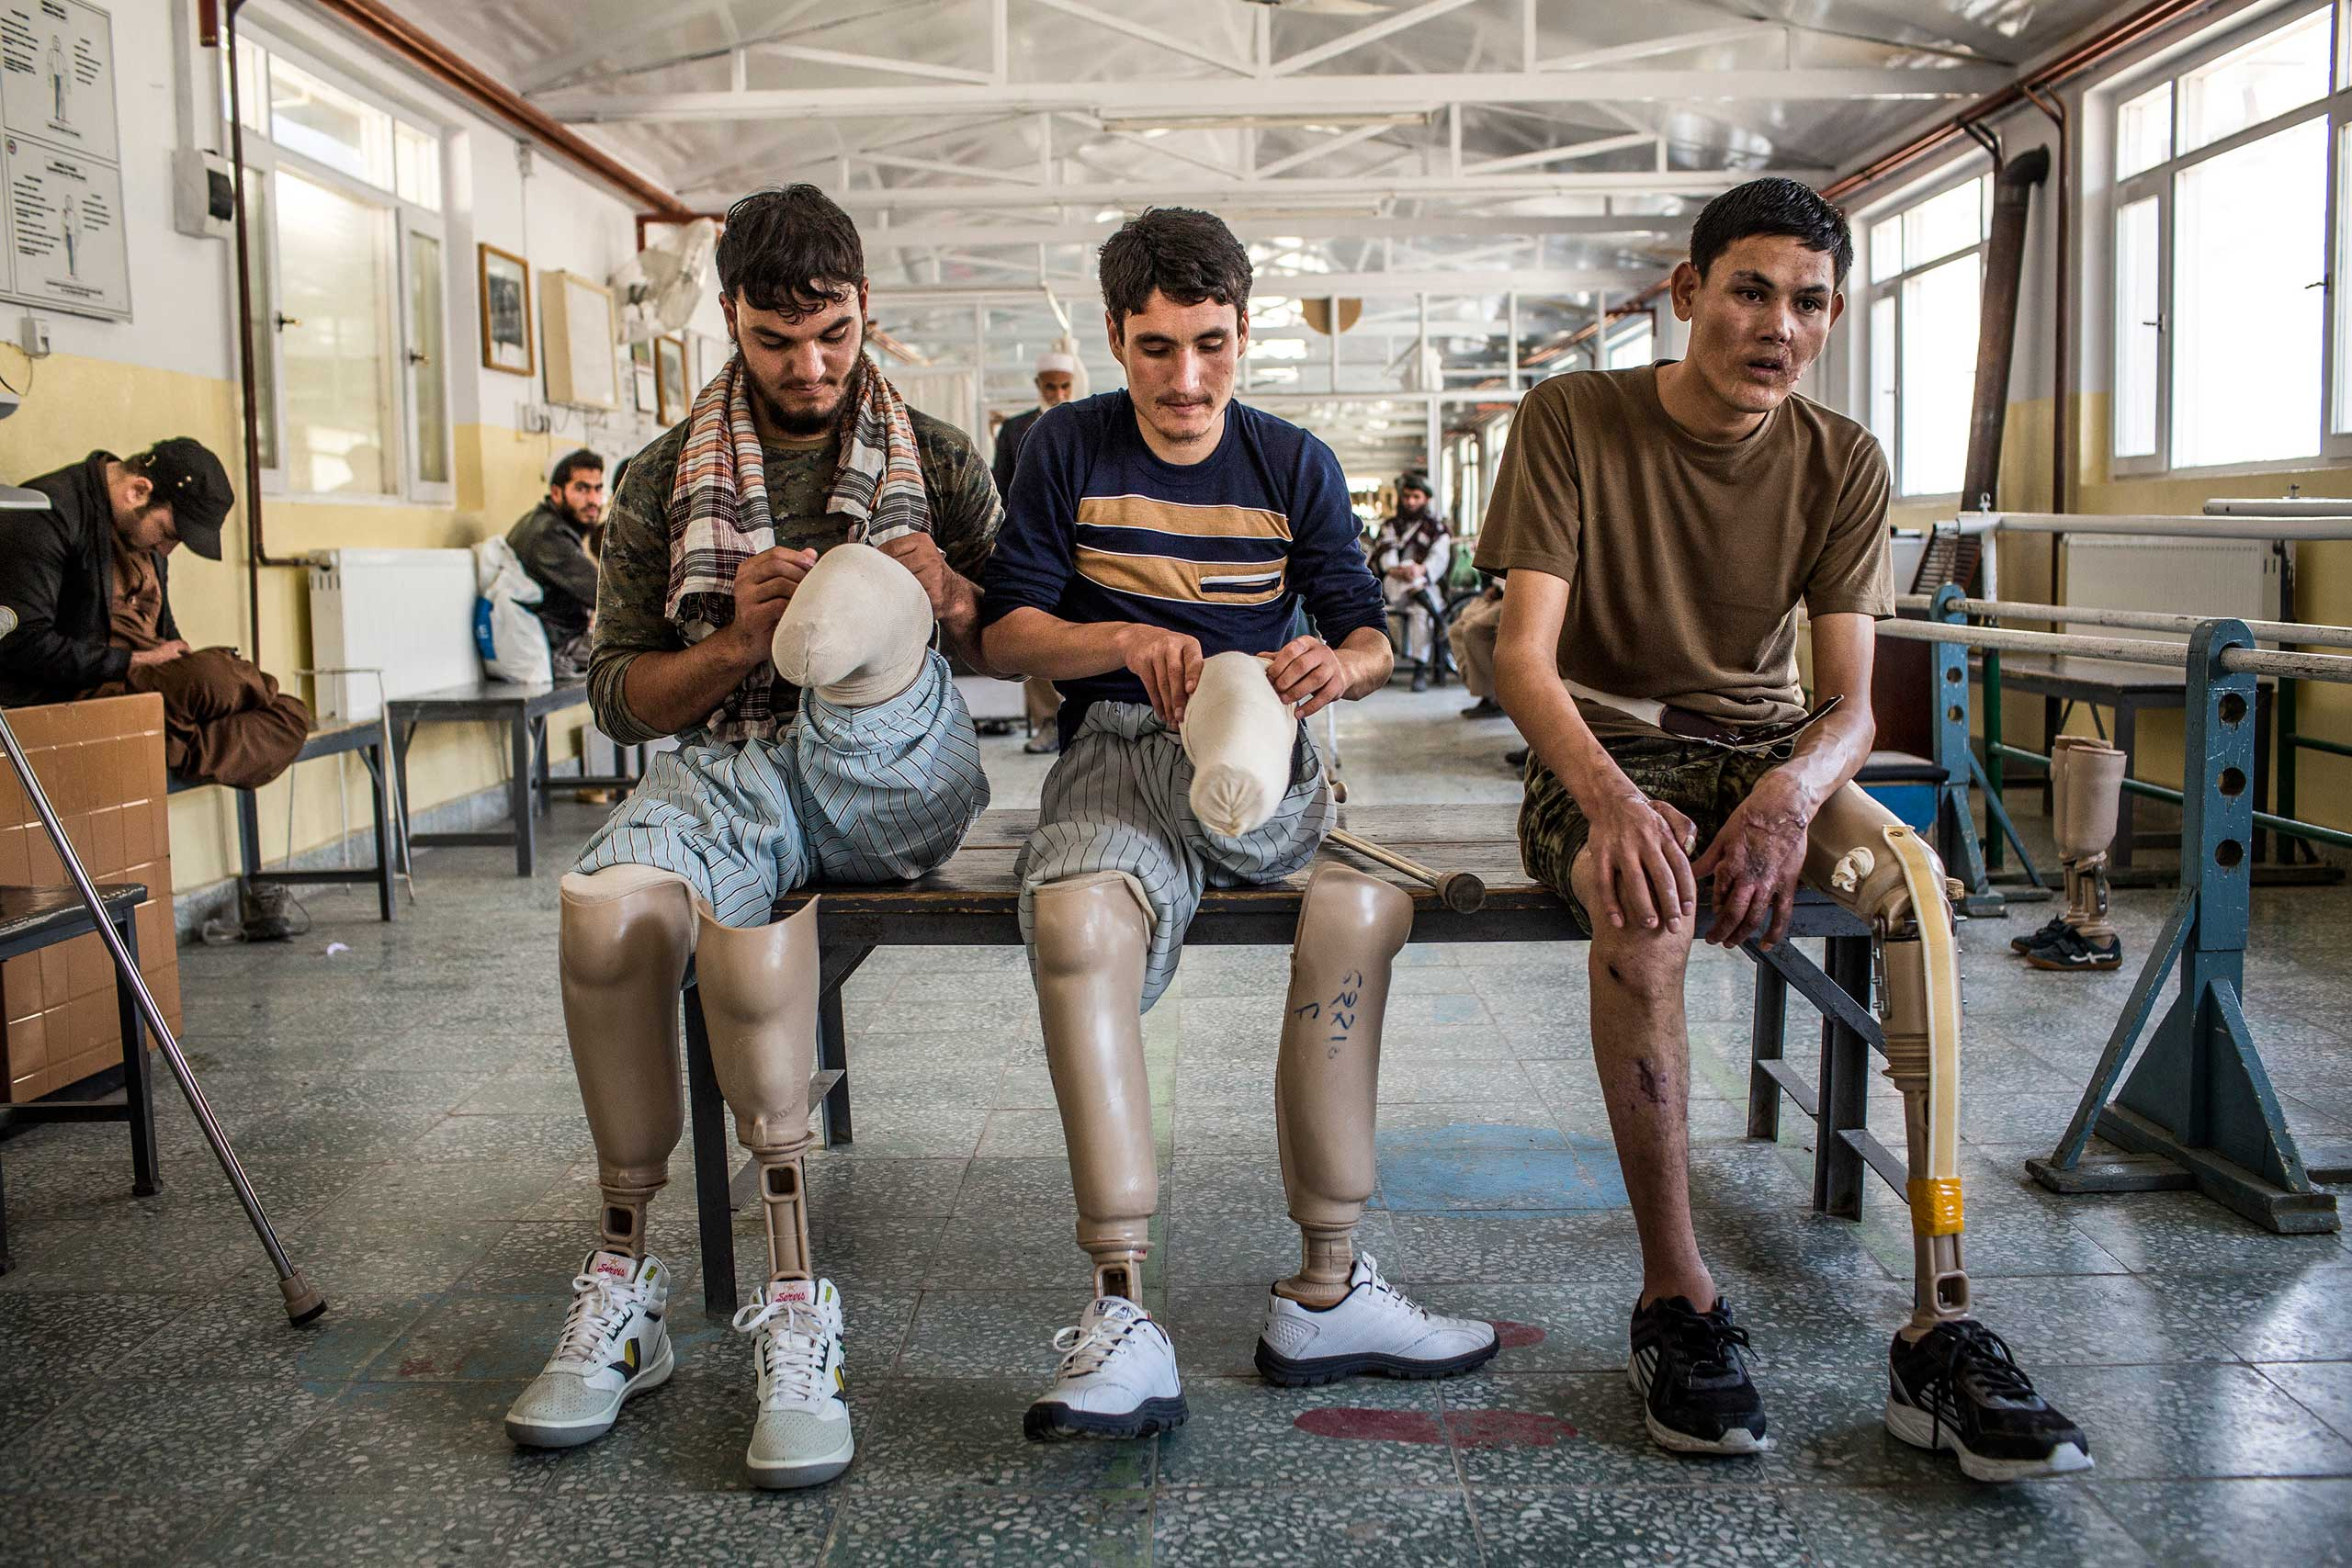 The New York Times: Disabled and Facing More Challenges in Afghanistan                               Rahimullah, Hamza and Islamudding, Afghan National Army soldiers who had injuries and amputations, adjust their prosthetics between physiotherapy sessions at the International Committee of the Red Cross?s orthopedic center in Kabul, Afghanistan, Nov. 22, 2014.